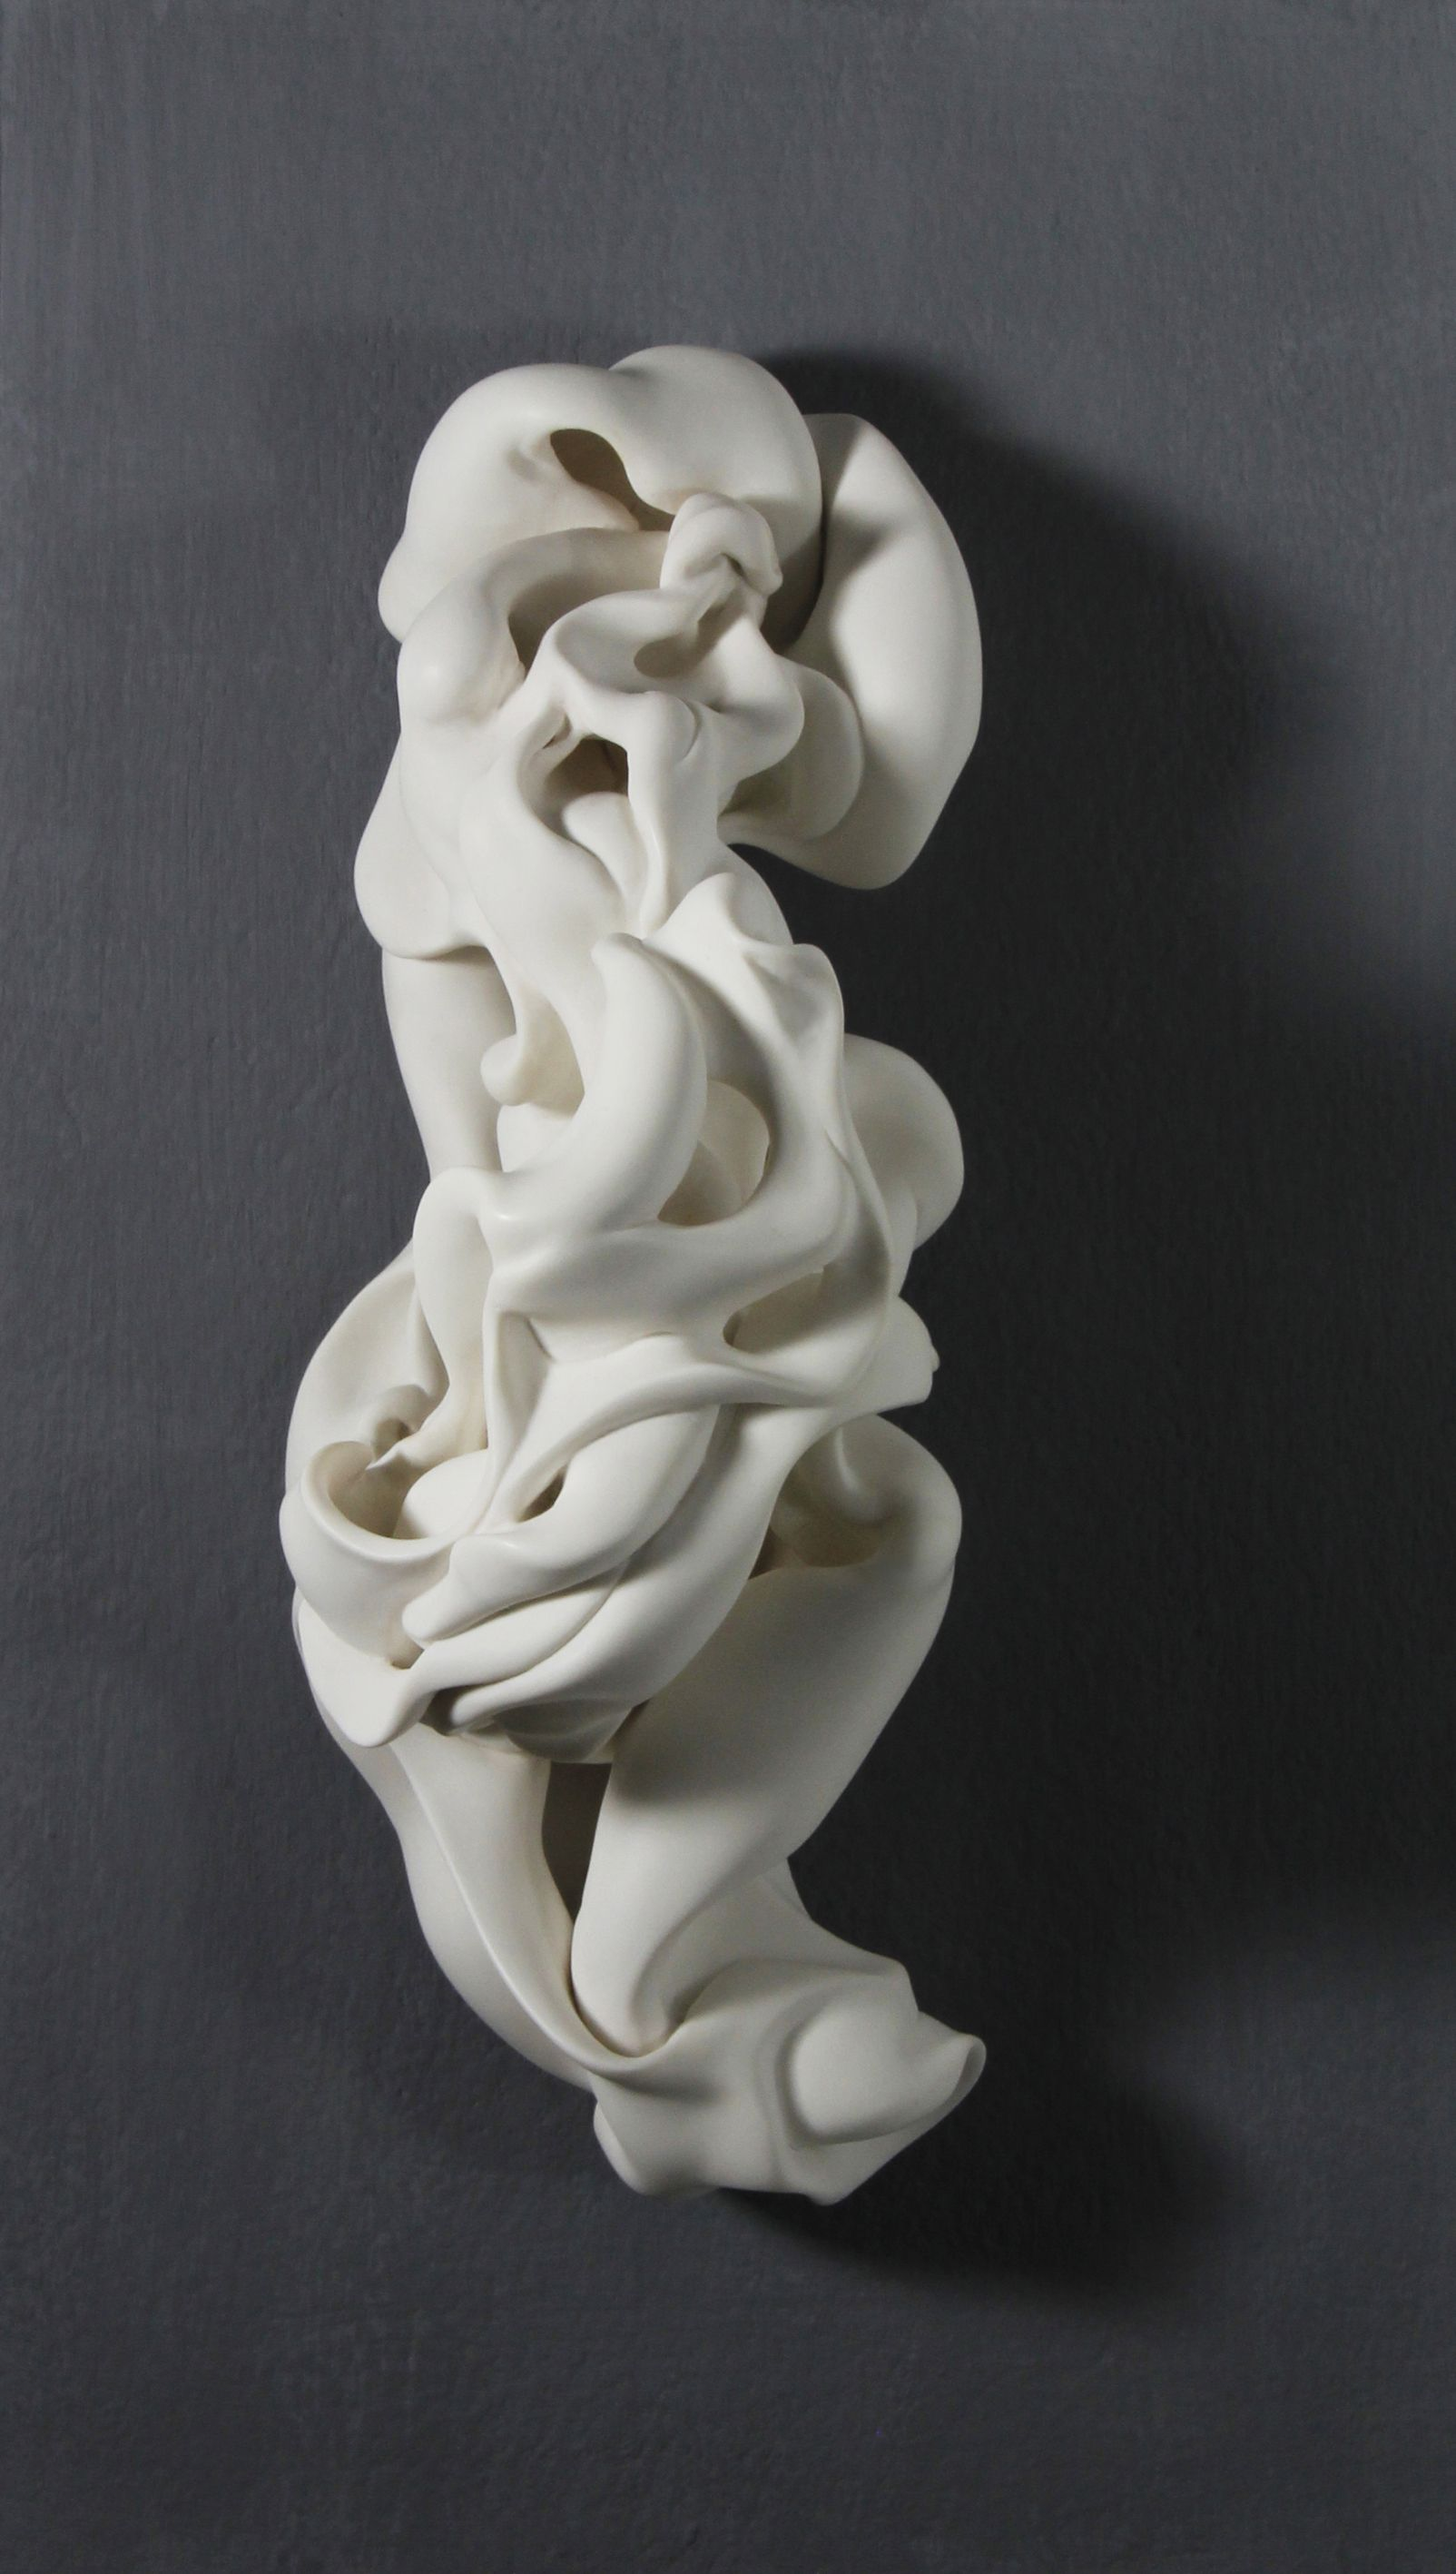 Motion,Sharon Brill,Sculpture contemporaine